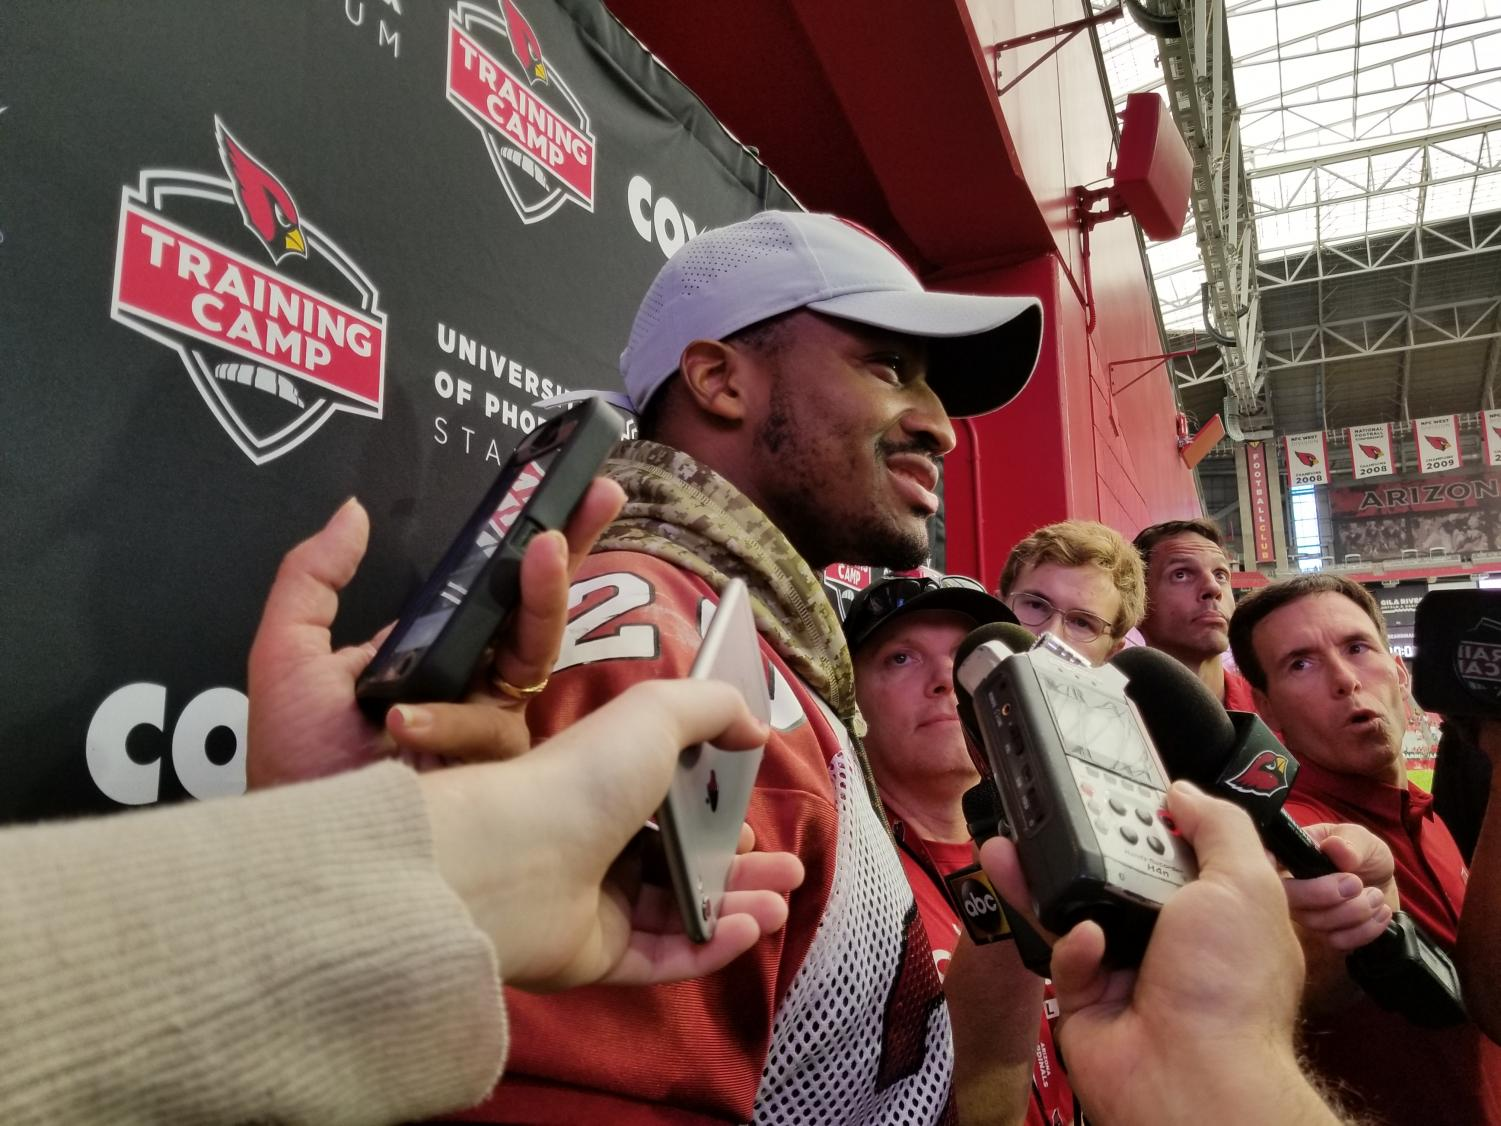 Reporter Cynthia Tapia Captures Deonne Bucannon at University Of Phoenix Stadium